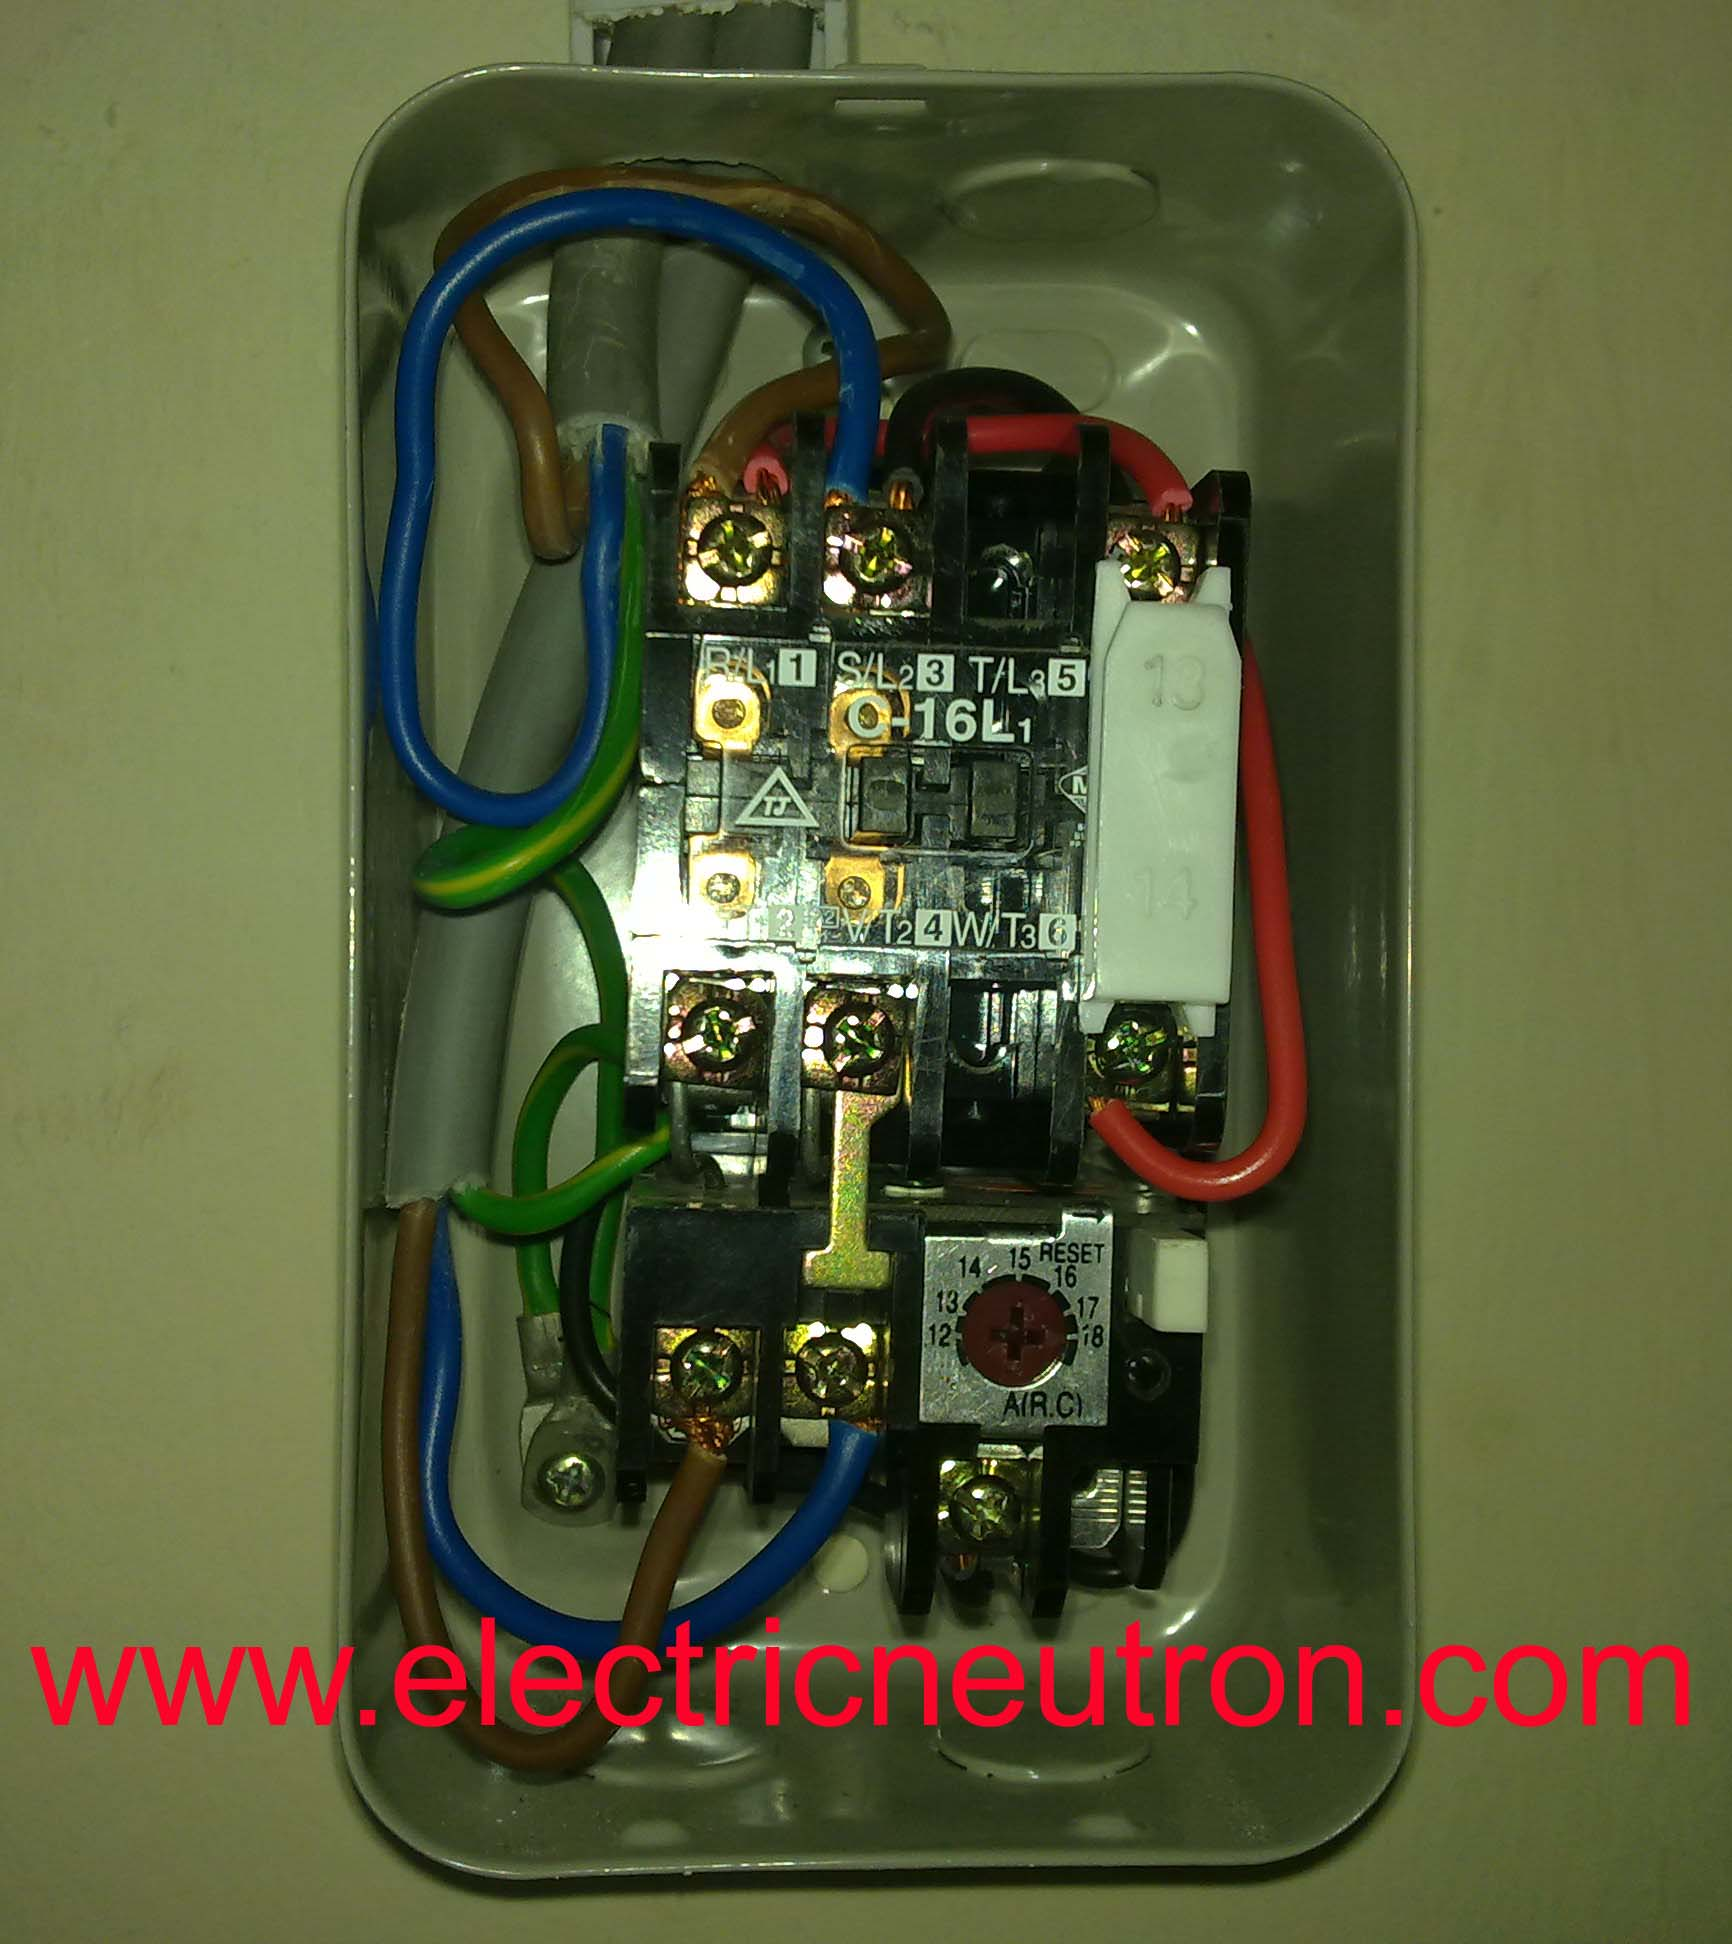 Dol Starter Circuit Diagram And Working Principle Wiring Motor Induction Starting Methods Source Naturally Direct On Line Electrical Engineering Centre